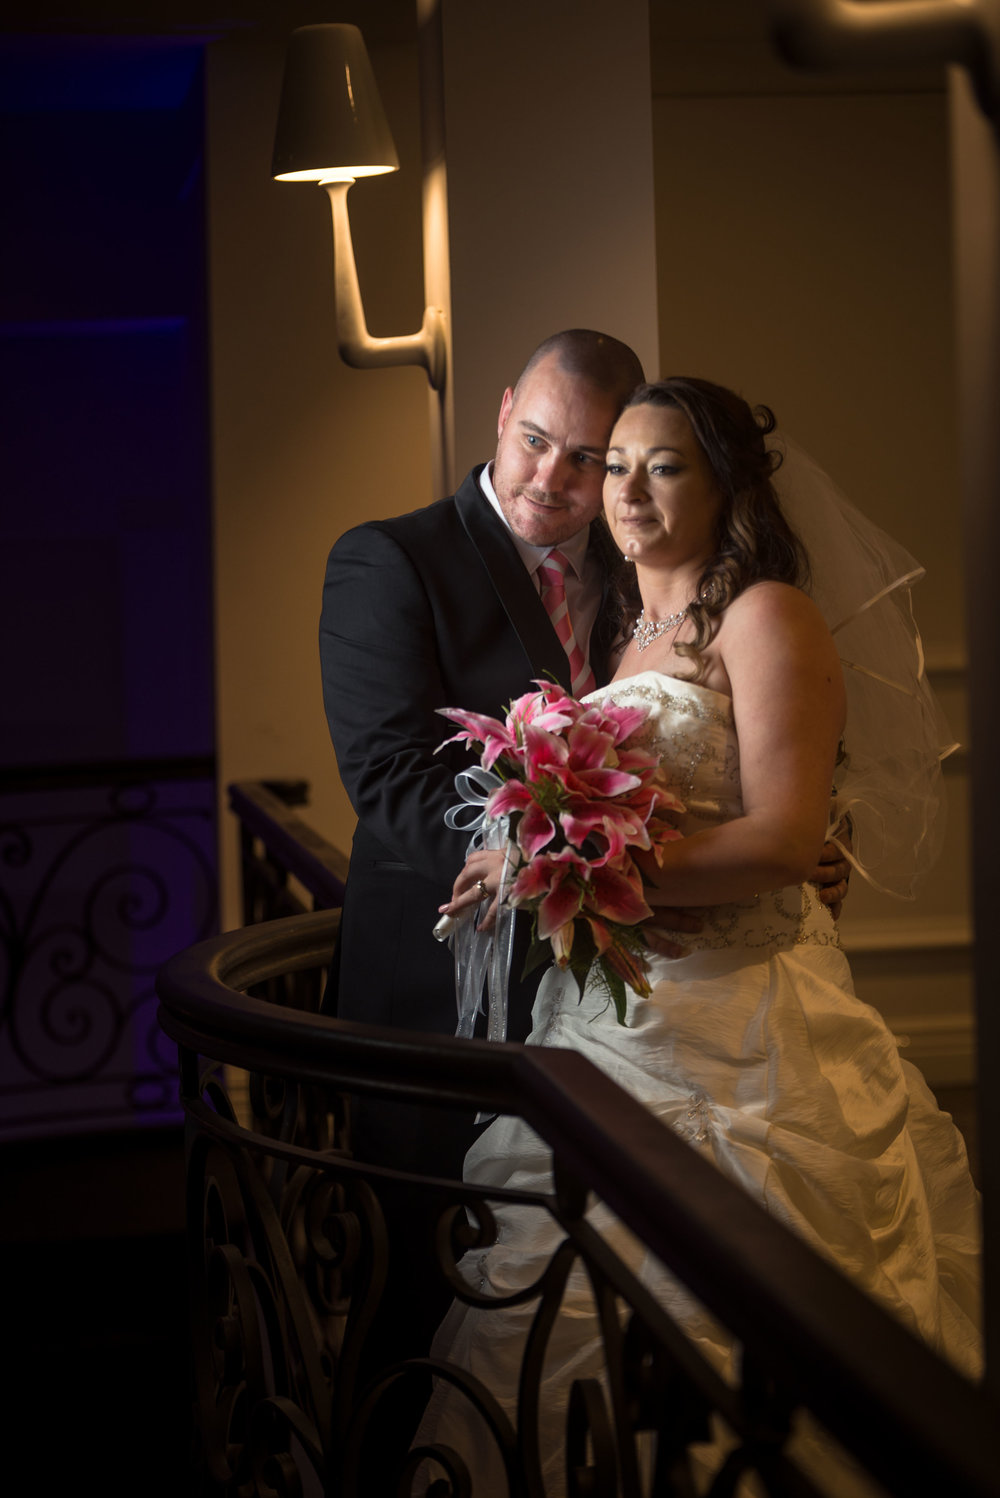 Sarah and Matthew Higgs Wedding - MCP - Pick - Colour - 4000px - 12th November 2016 (29).jpg